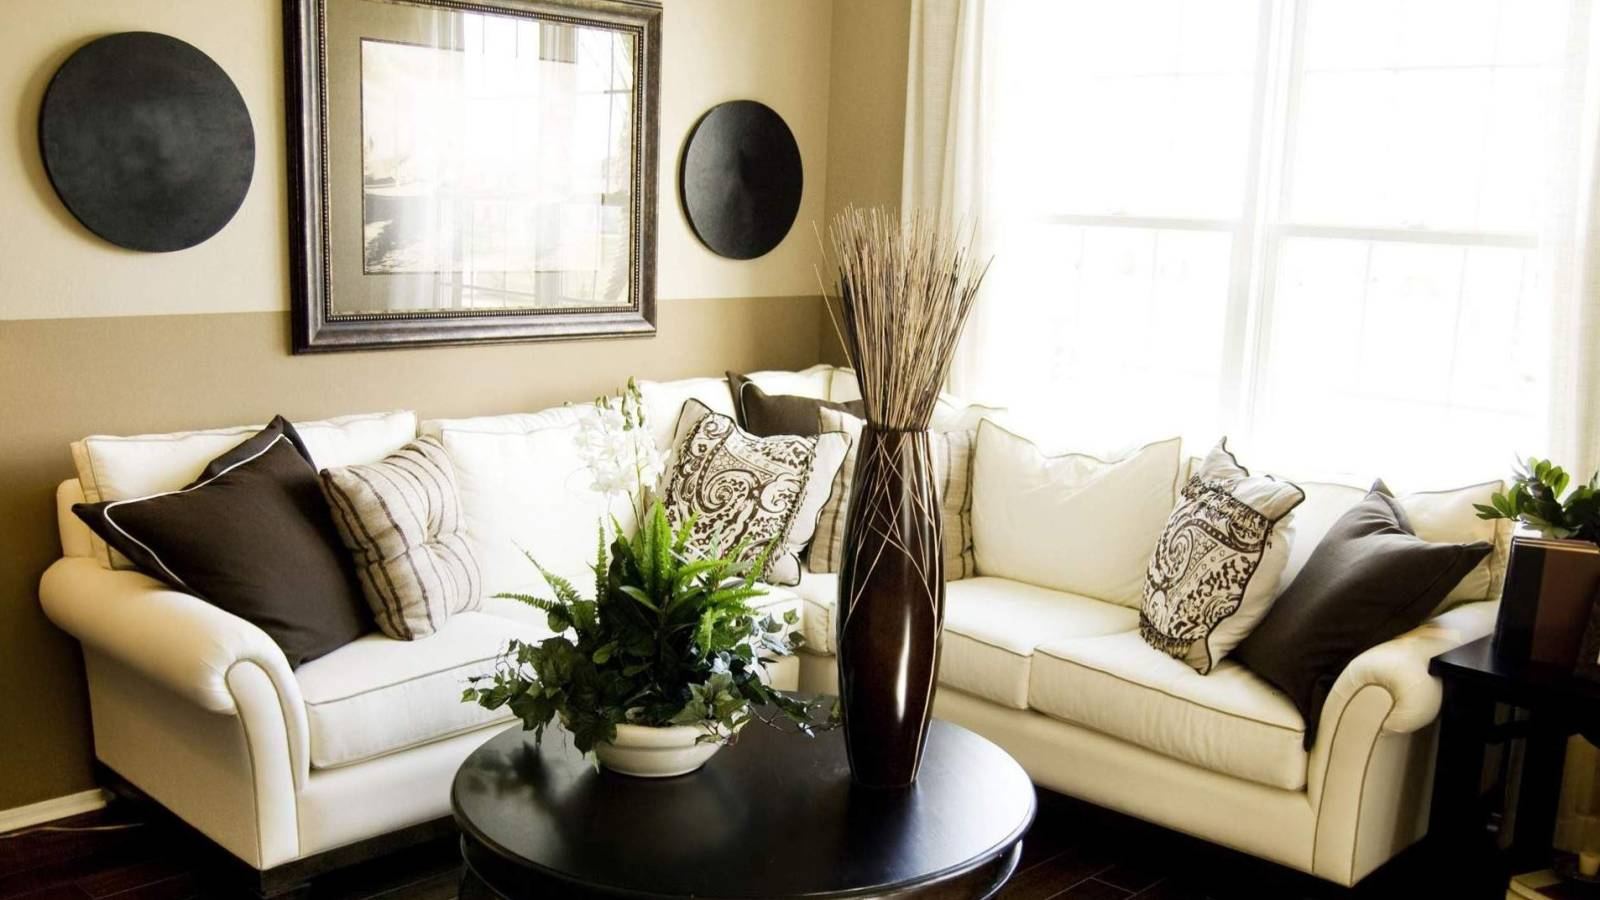 17 Amazing Small Living Room Decorating Ideas For Cozy Home Interior Design Inspirations